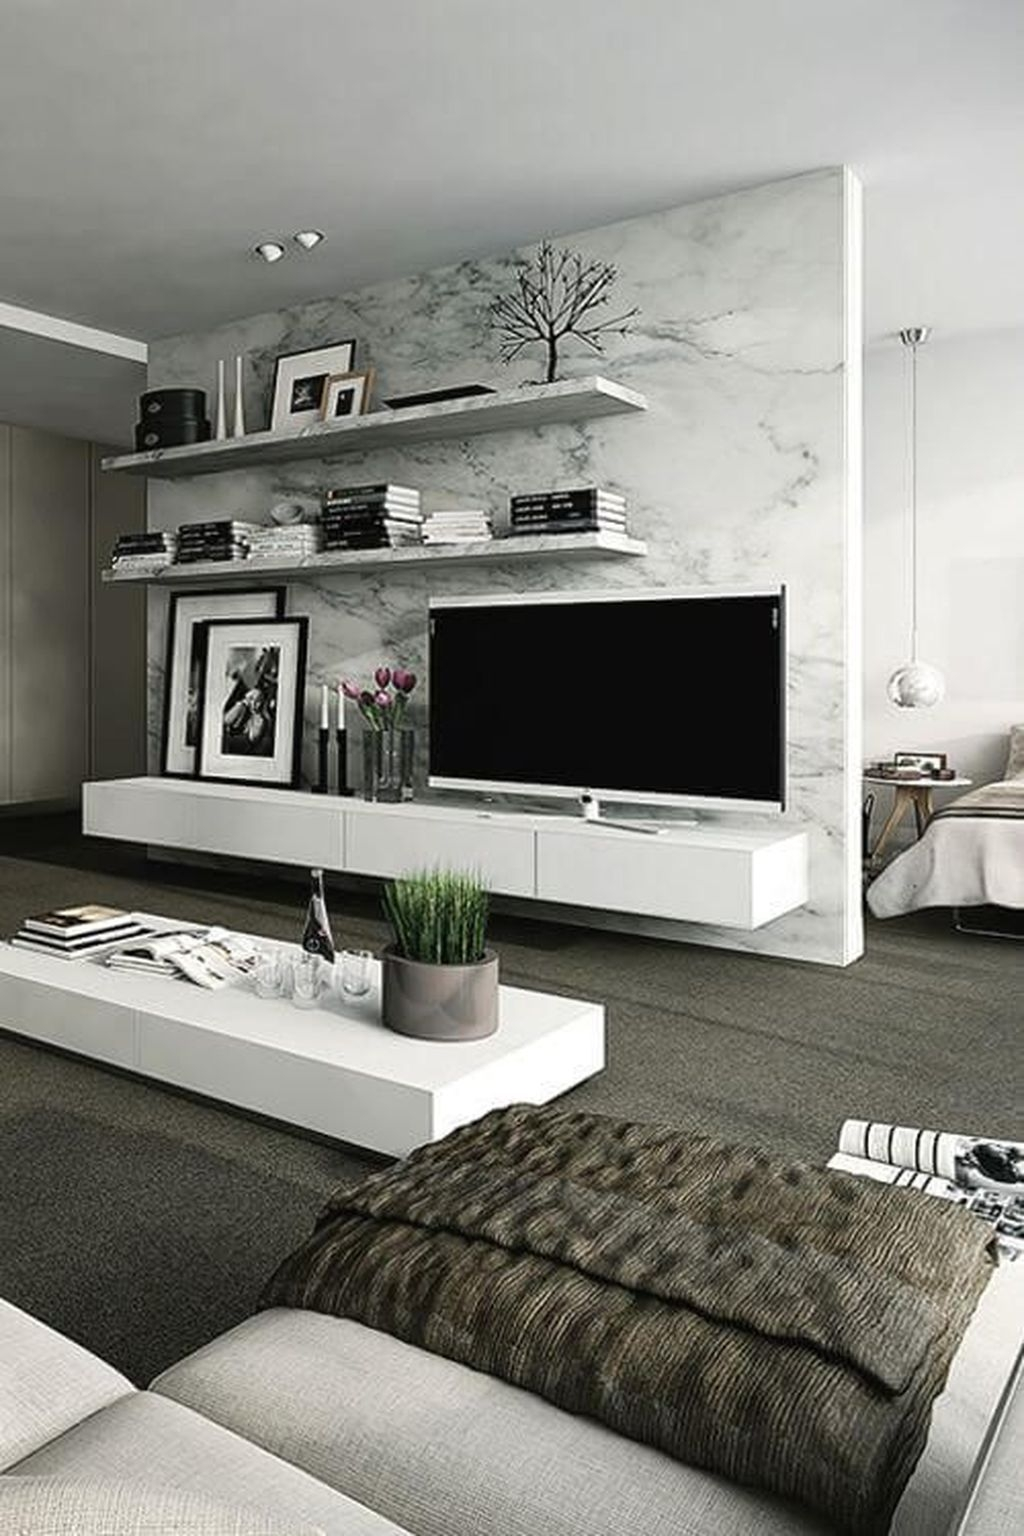 The Best Living Room Decorating Ideas Trends 2019 49